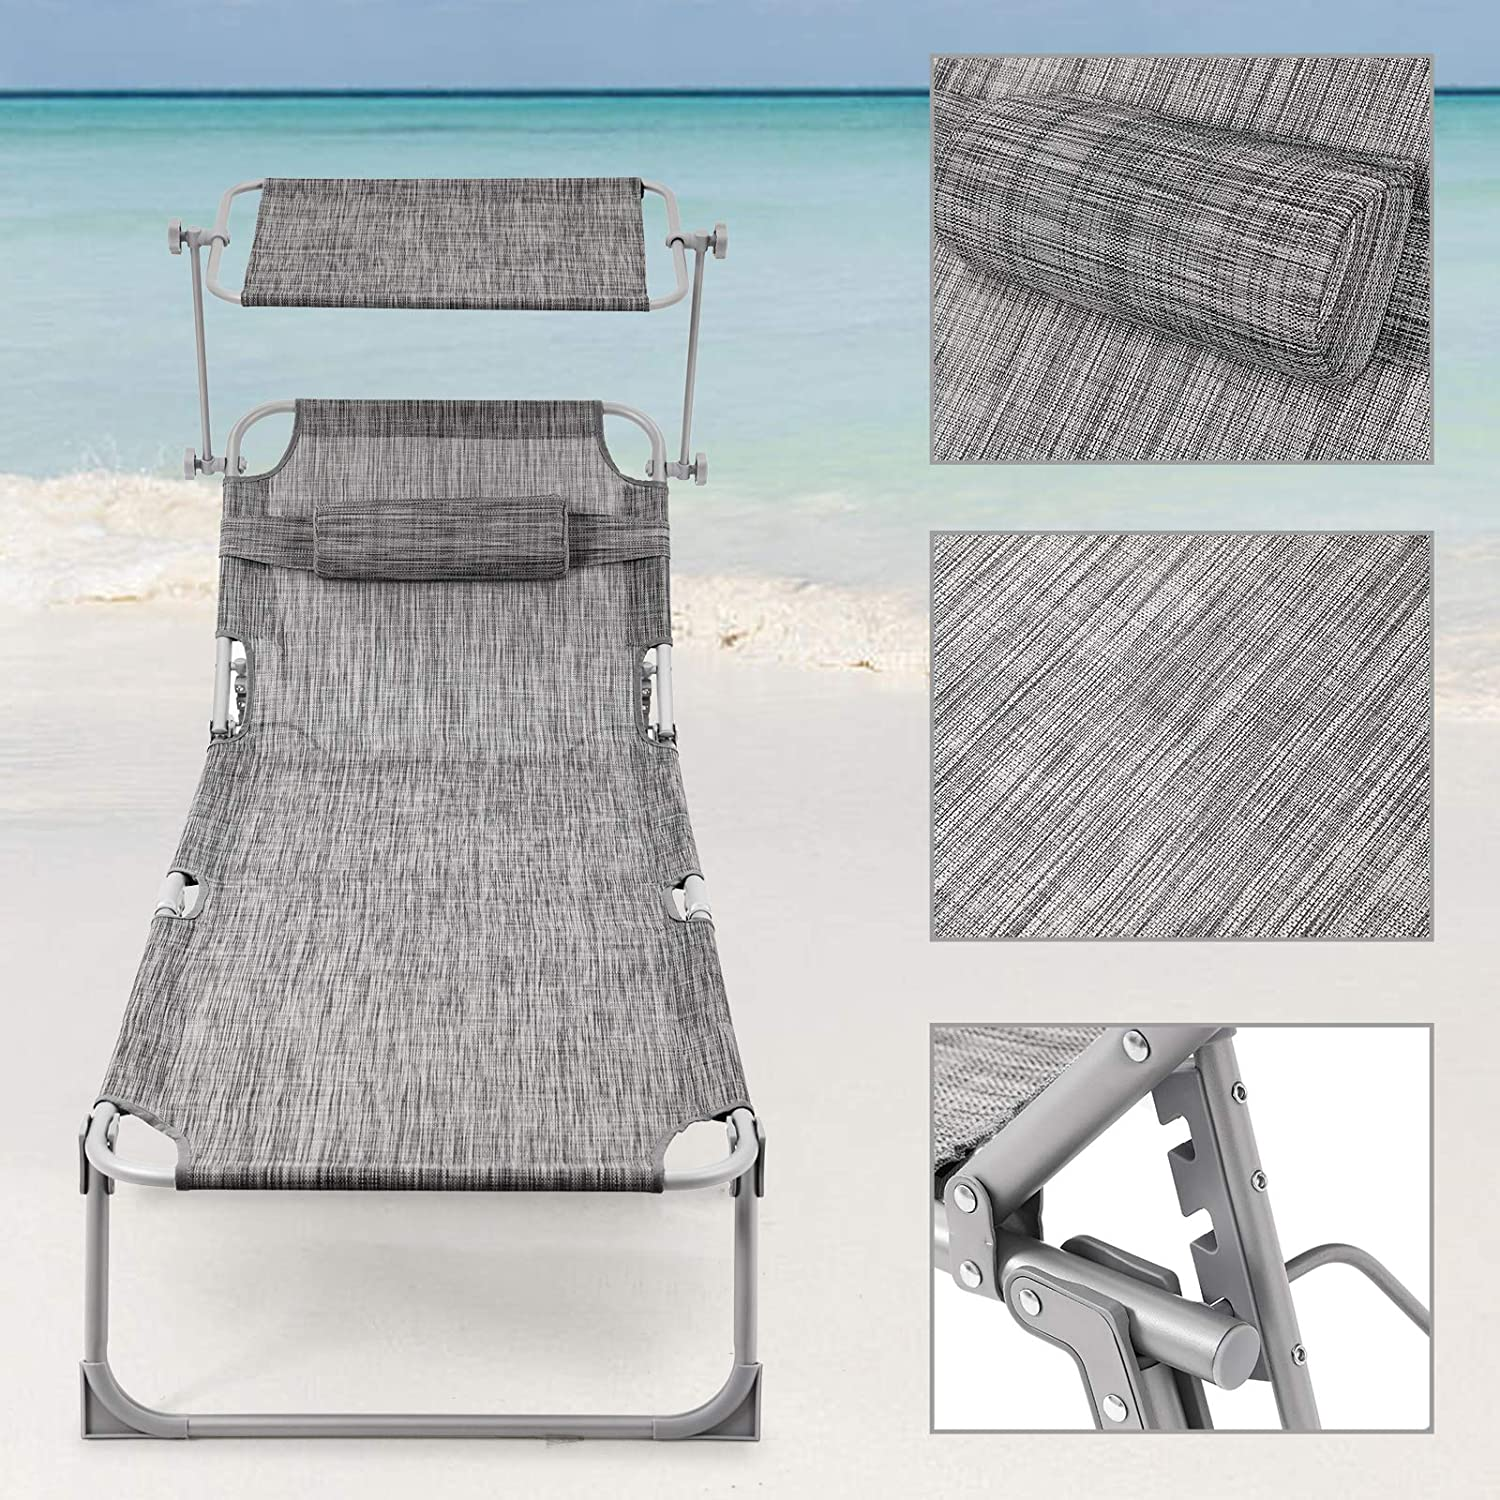 with Sunshade and Adjustable Backrest GCB19T-2 SONGMICS Sun Lounger Set of 2 Recliner Chair 193 x 63 x 32 cm 250 kg Load